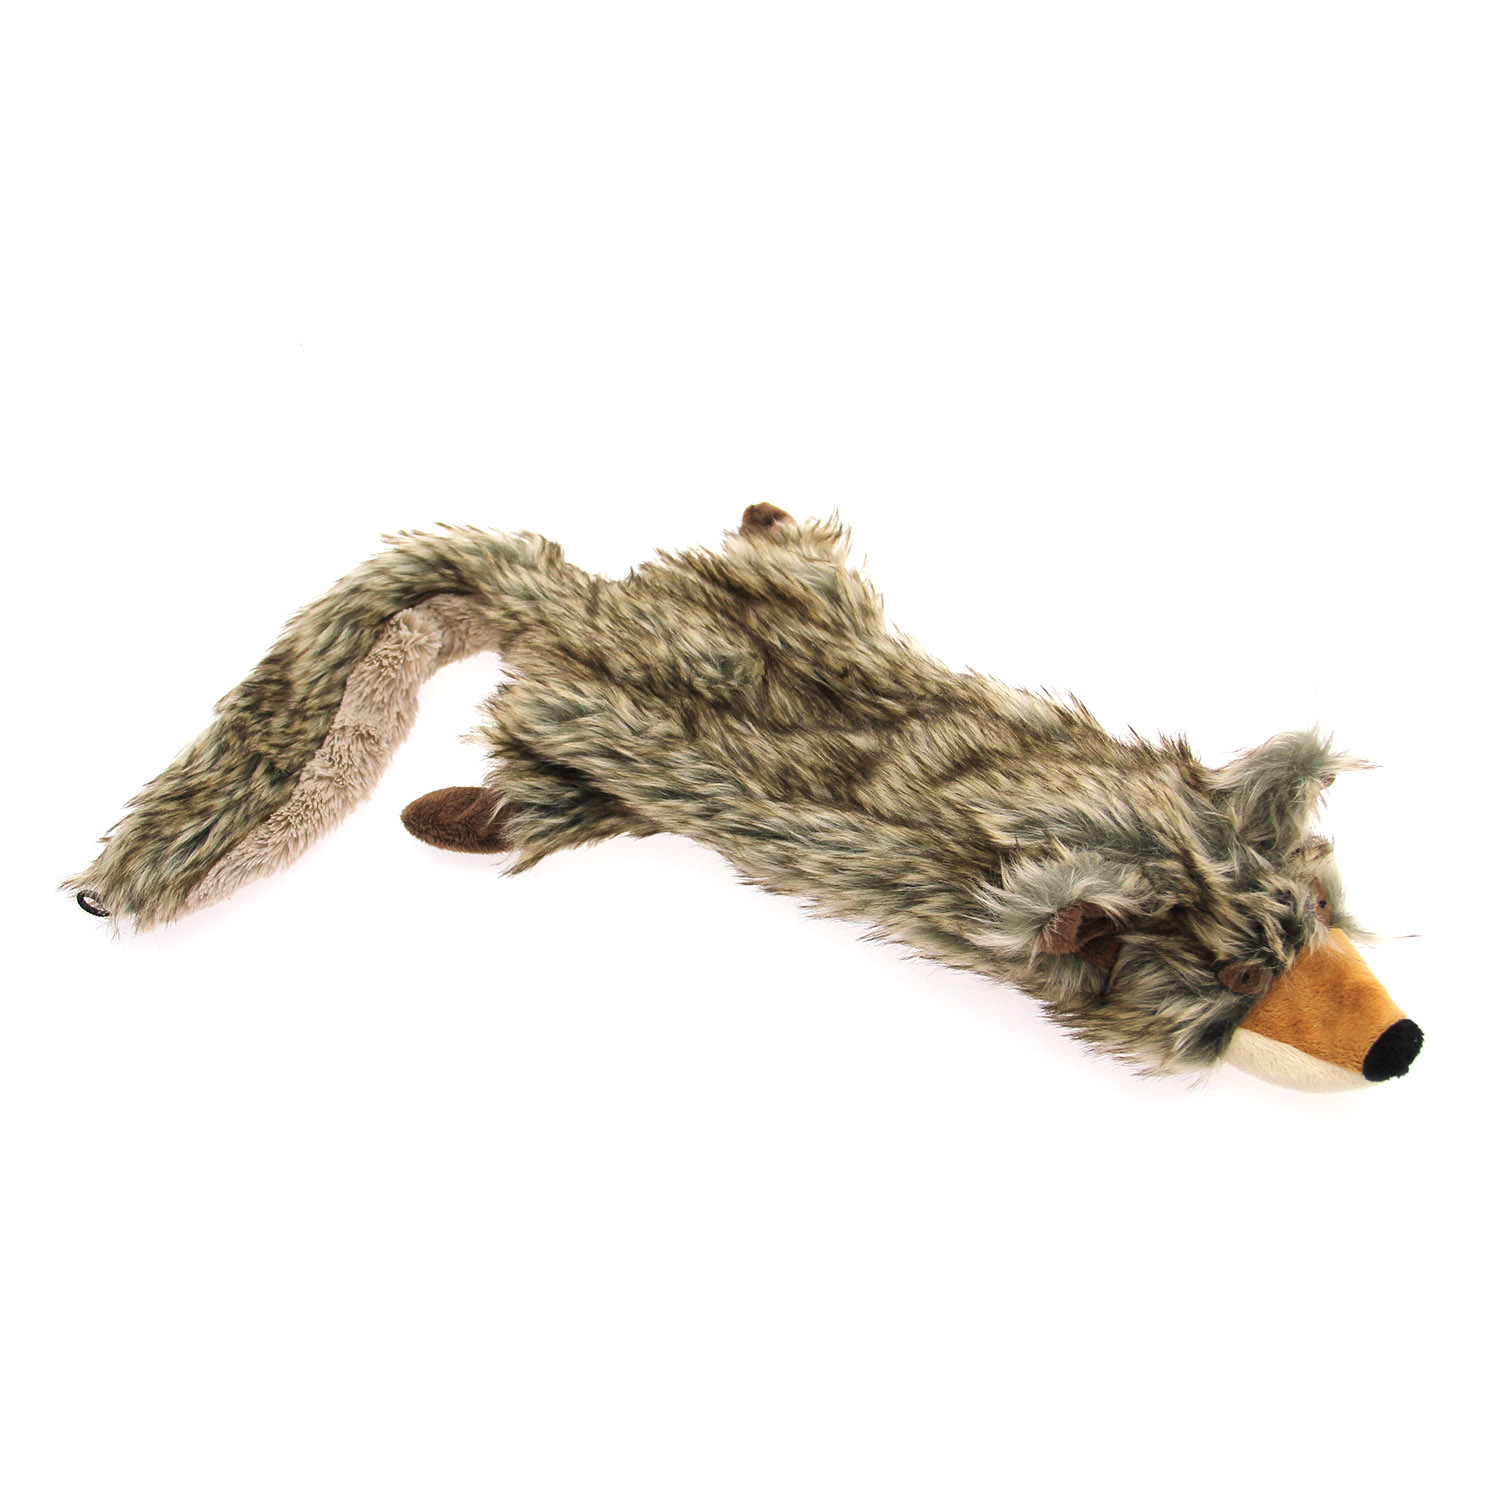 Zanies Unstuffies Critter Dog Toy - Coyote